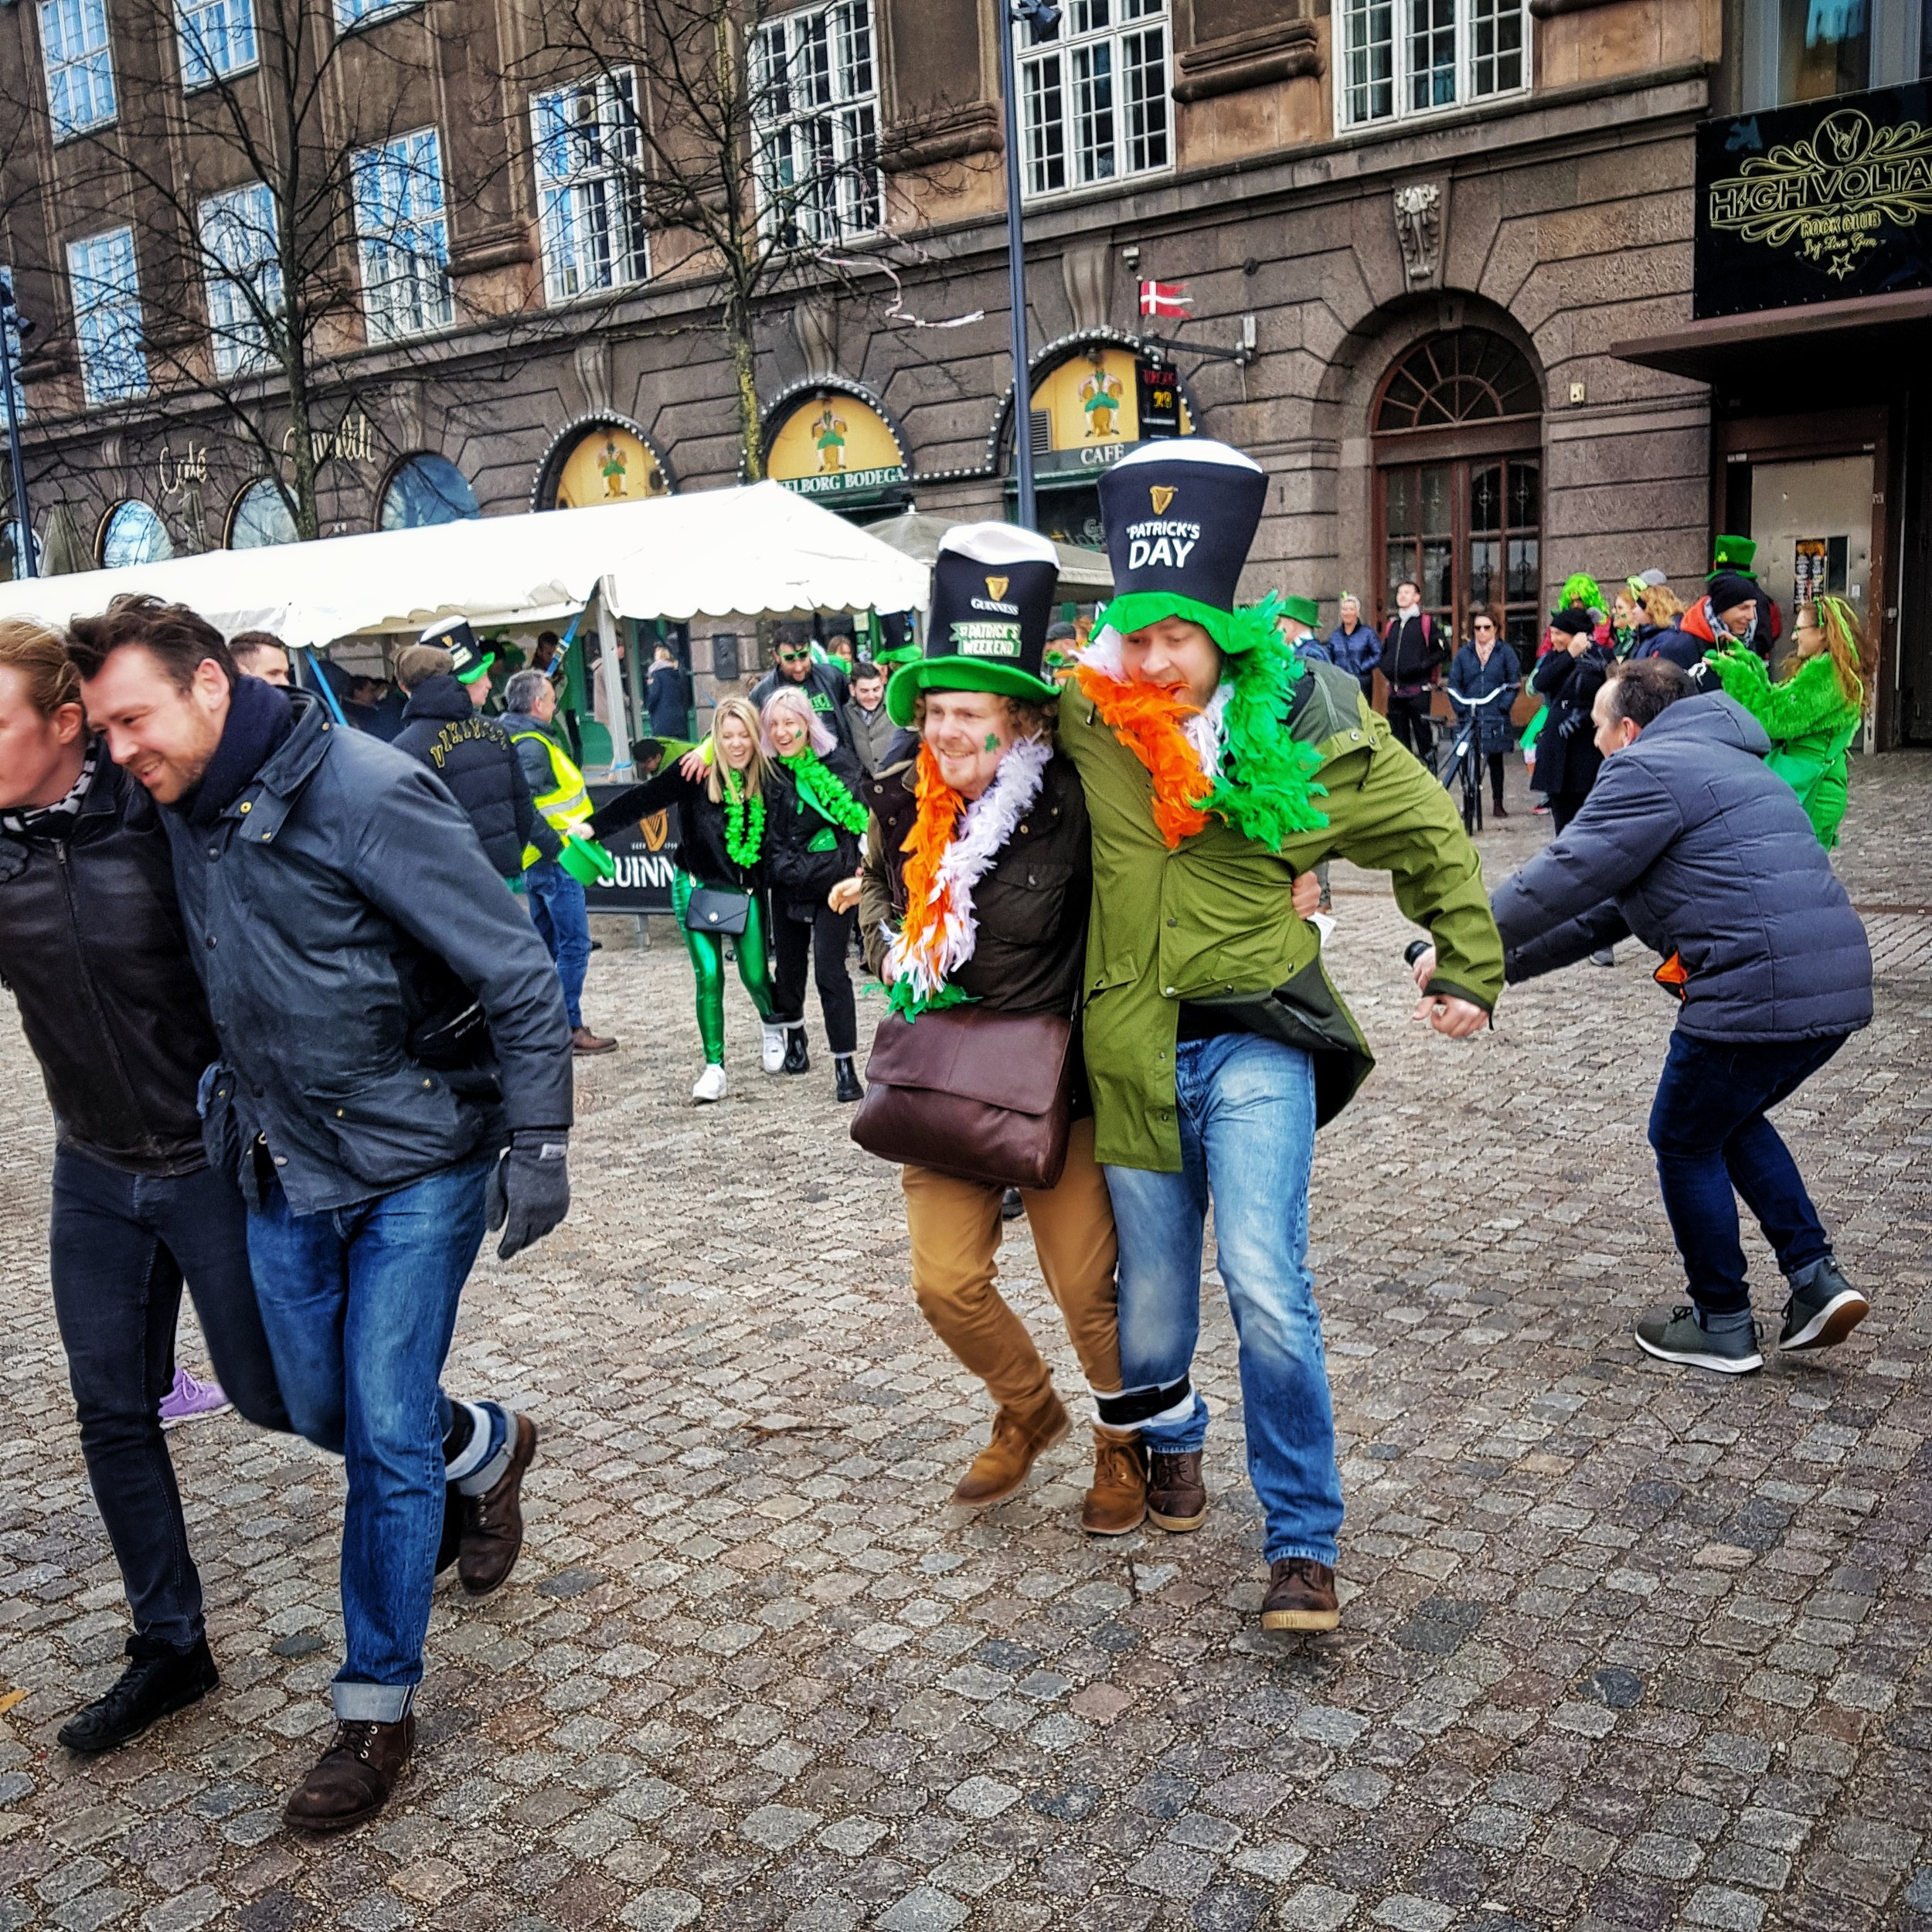 March 17 - Day 76: It's Paddy's day!